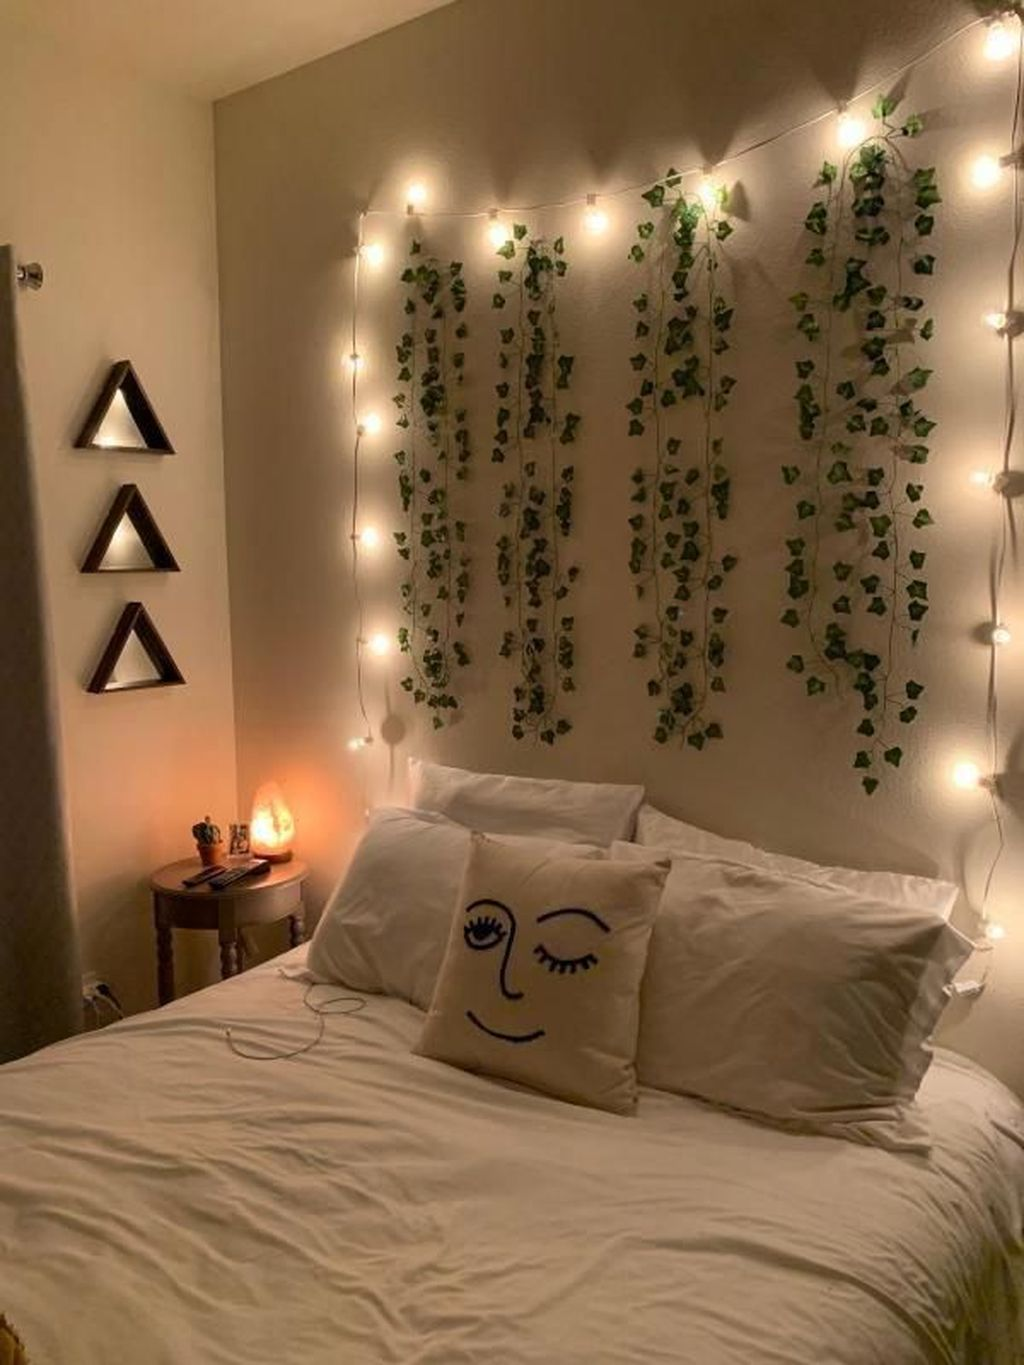 Stunning Christmas Lights Decoration Ideas In The Bedroom 05